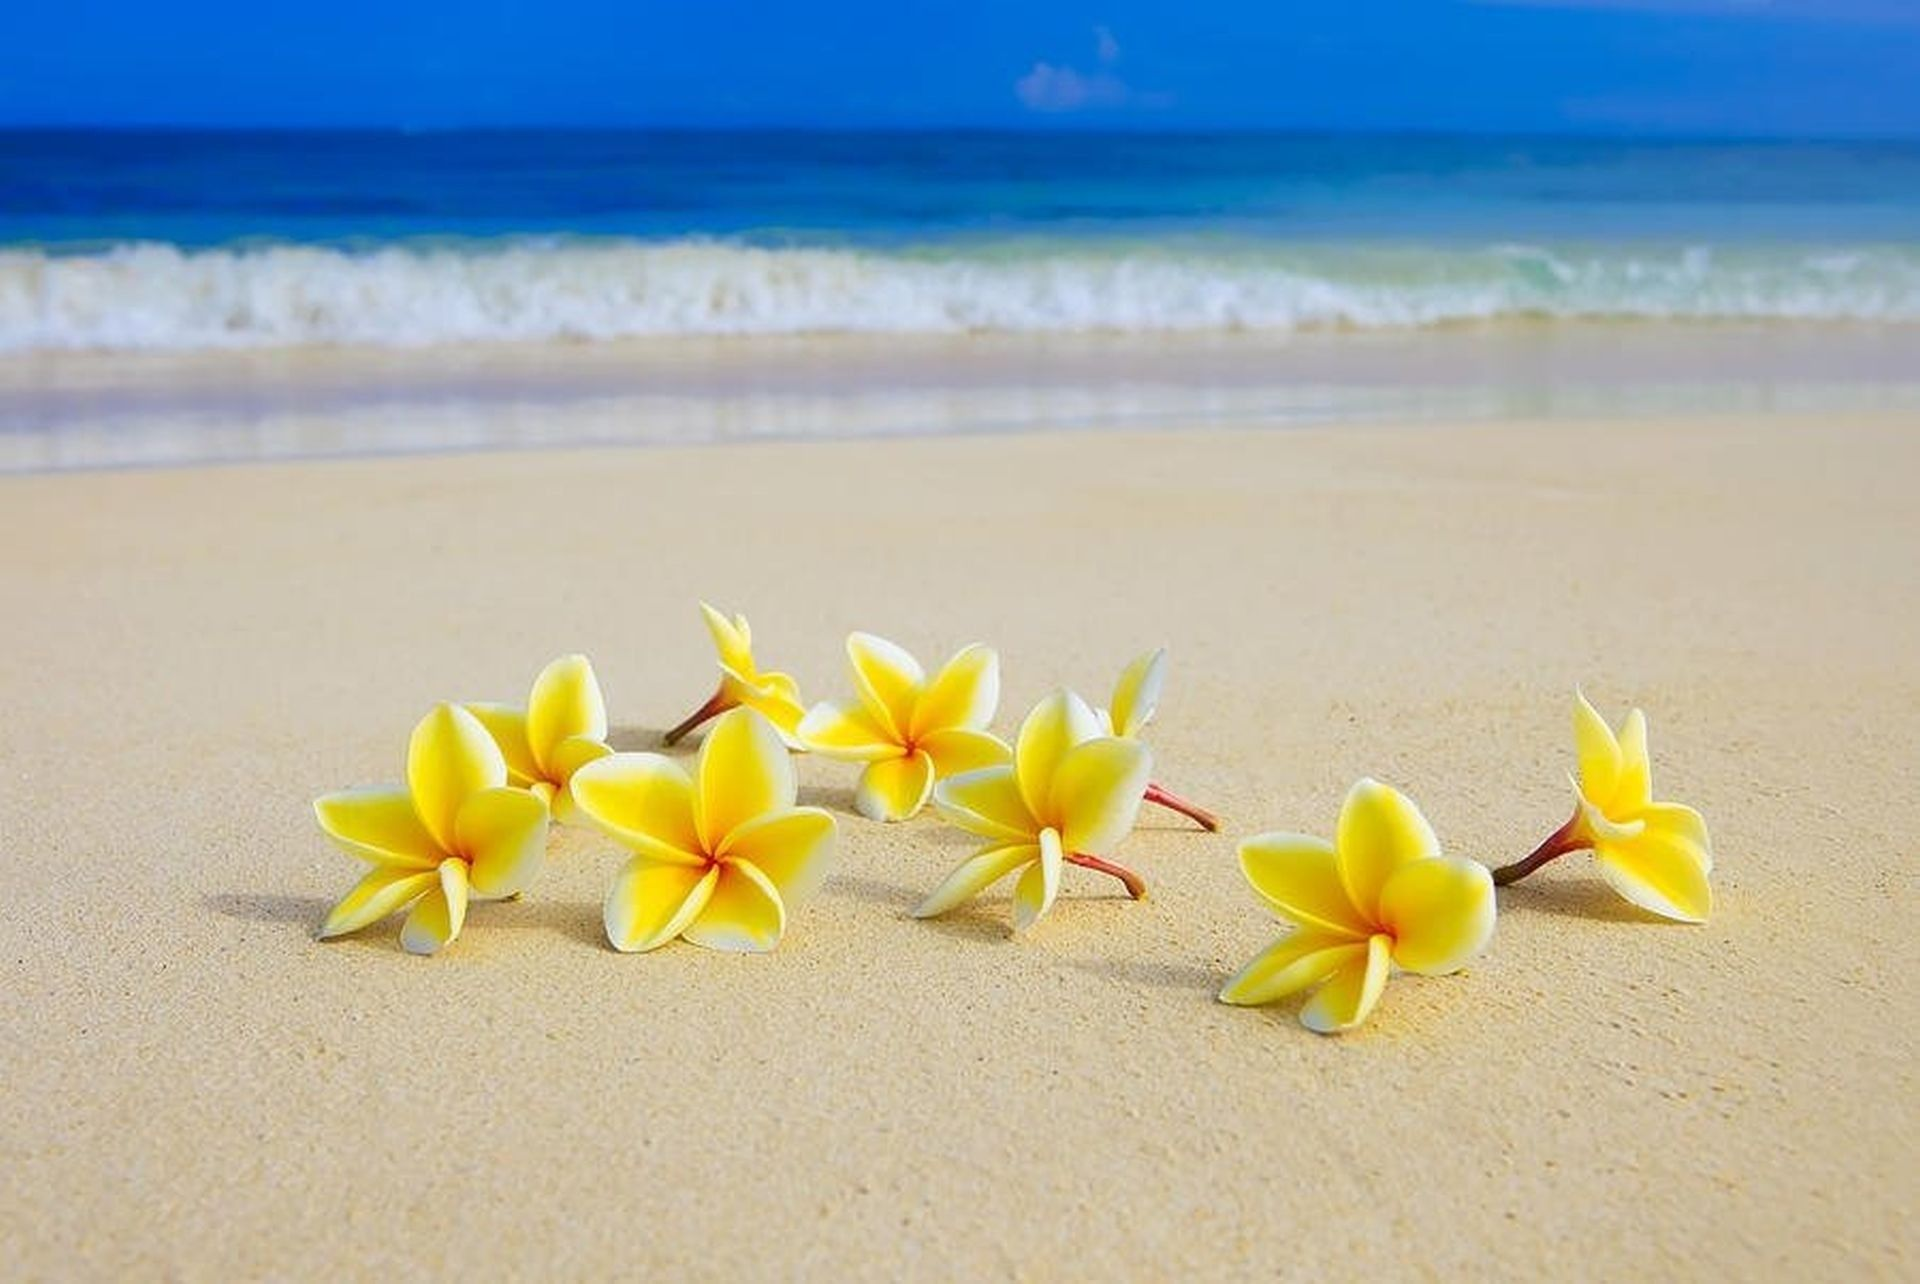 Permalink to Beach Flower Wallpaper